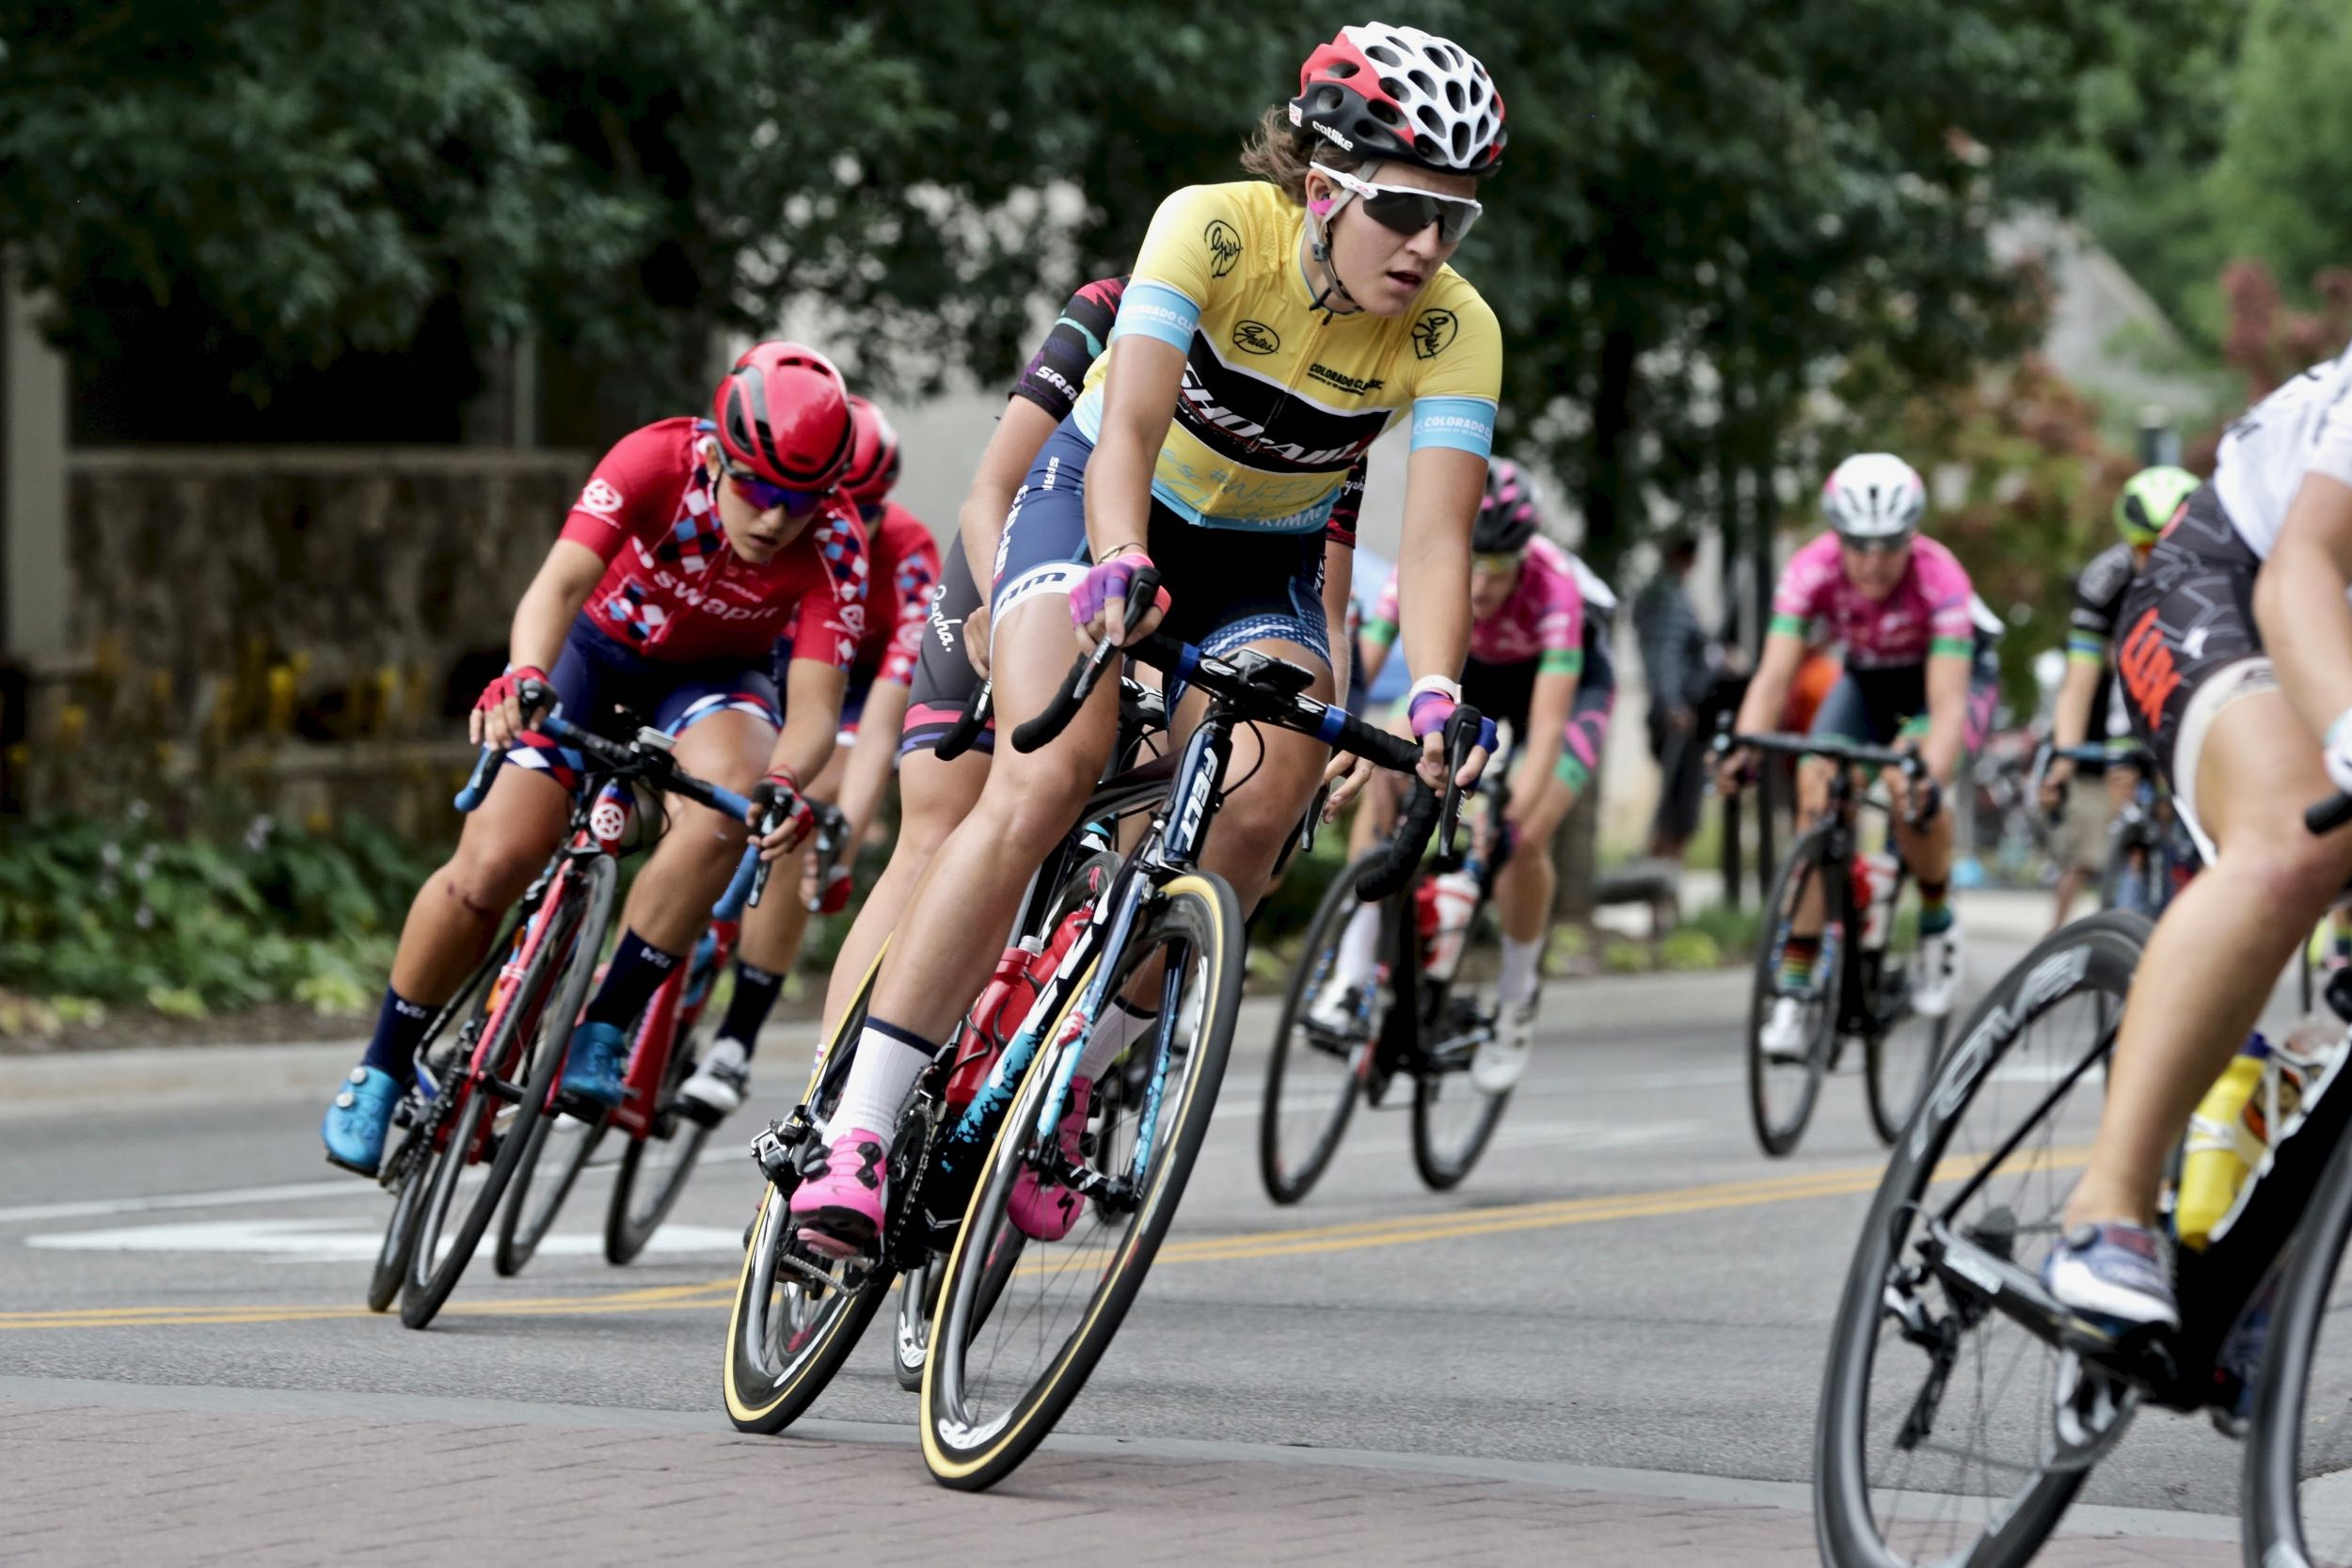 Defending the overall race leader's yellow jersey, American Chloe Dygert-Owen claimed four top spots Saturday Aug. 23 at the Colorado Classic bicycle race's second stage in Avon: the stage winner, overall race leader, sprint winner and queen of the mountain.